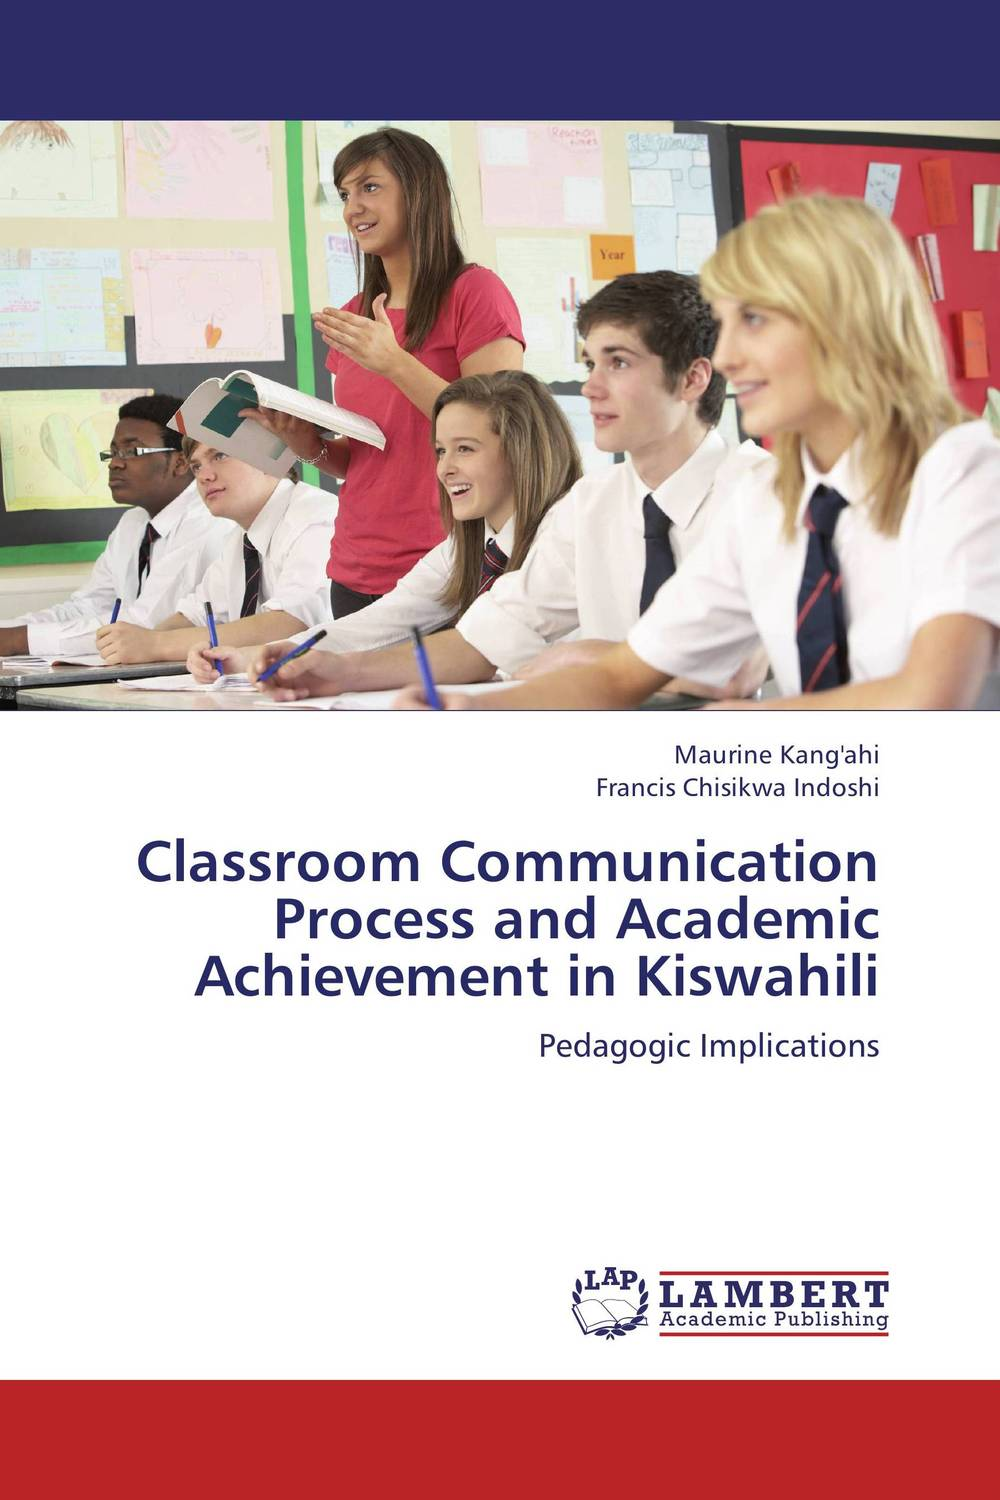 Classroom Communication Process and Academic Achievement in Kiswahili